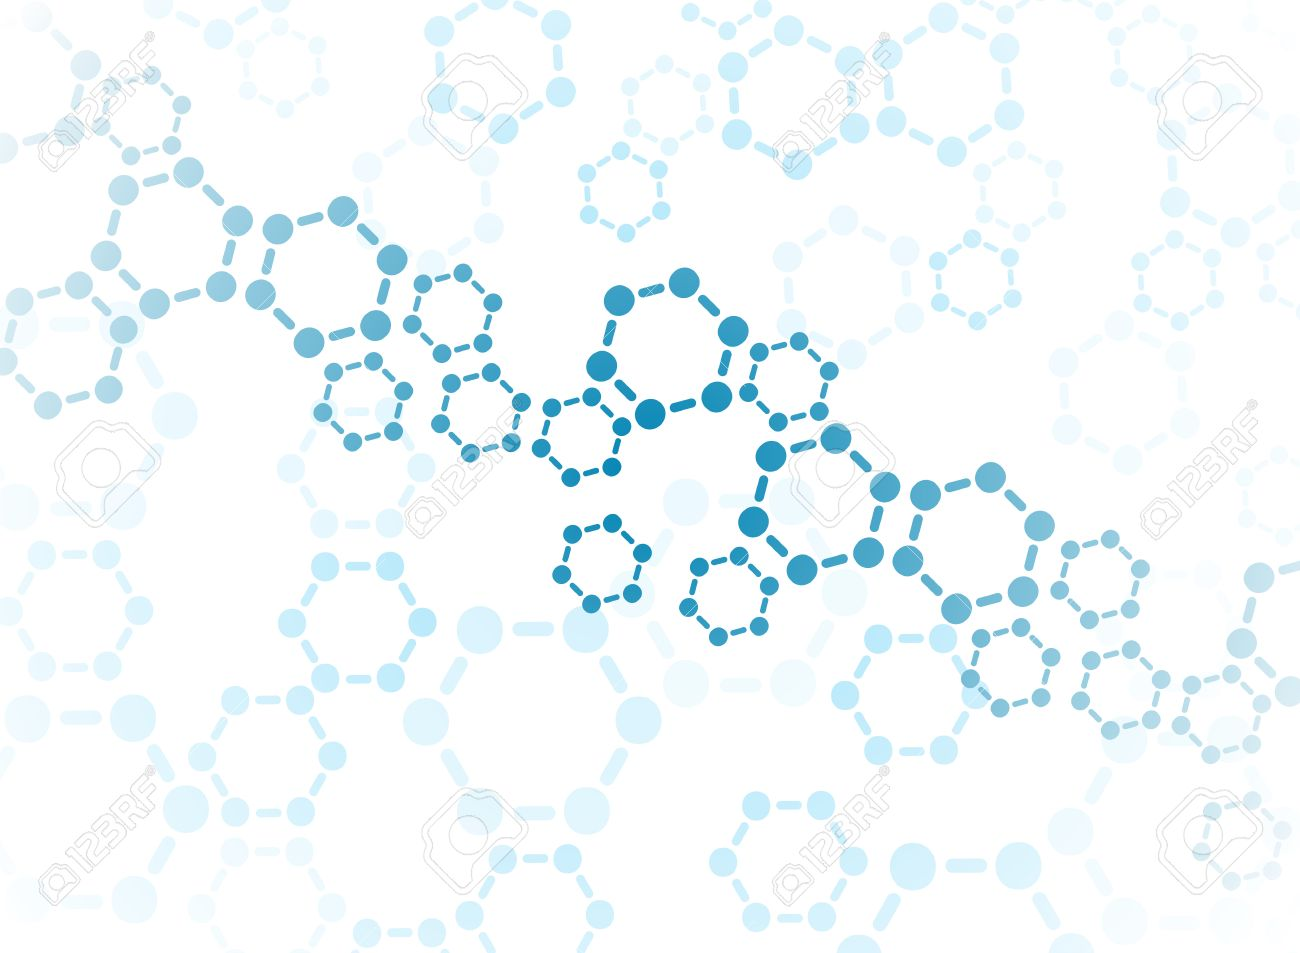 Abstract molecules medical background - 31834679